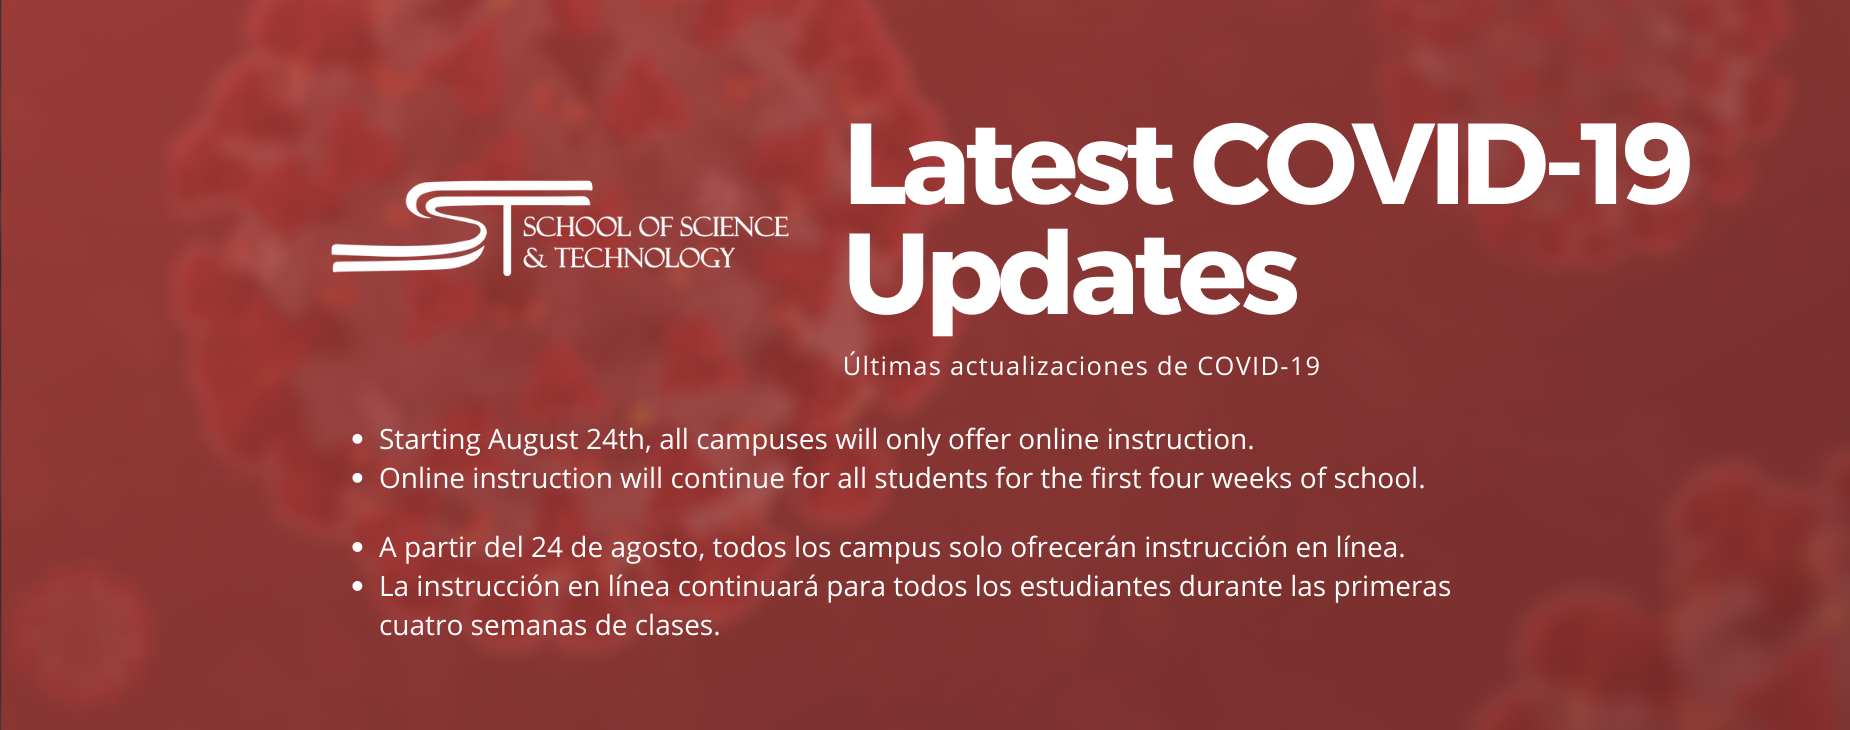 Latest COVID-19 Updates / Últimas actualizaciones de COVID-19 | Starting August 24th, all campuses will only offer online instruction.  Online instruction will continue for all students for the first four weeks of school / A partir del 24 de agosto, todos los campus solo ofrecerán instrucción en línea. La instrucción en línea continuará para todos los estudiantes durante las primeras cuatro semanas de clases.